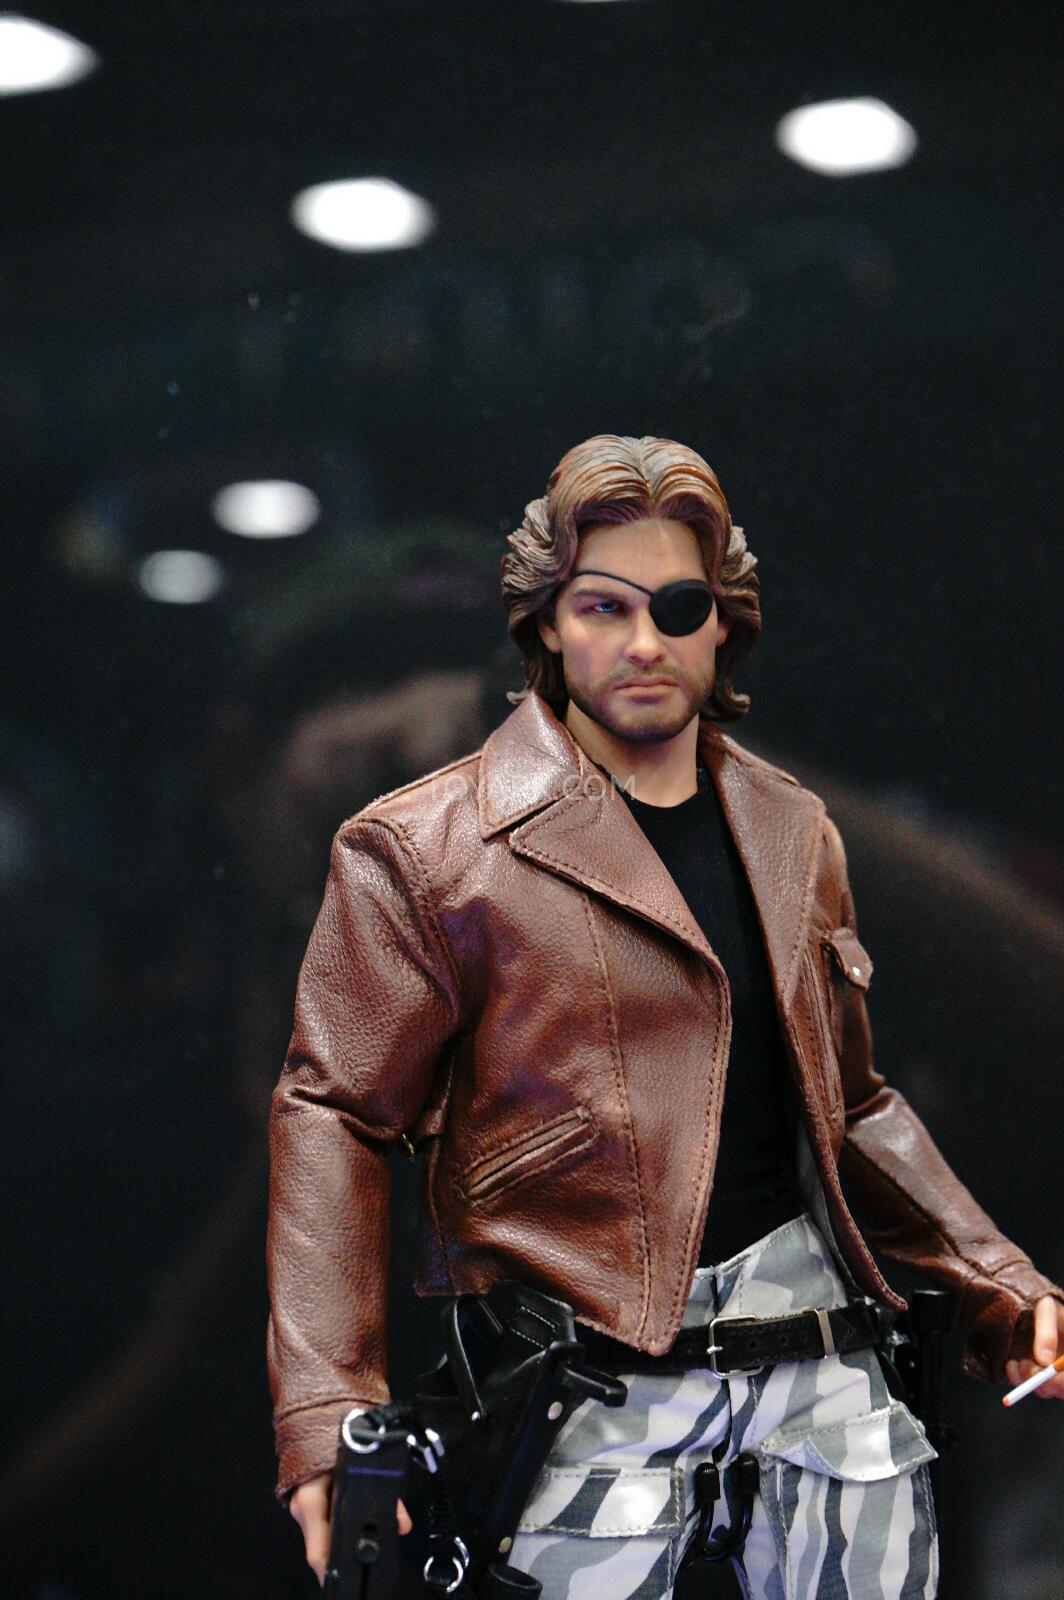 SDCC-2014-Sideshow-Snake-Plissken-Sixth-Scale-Figures-003